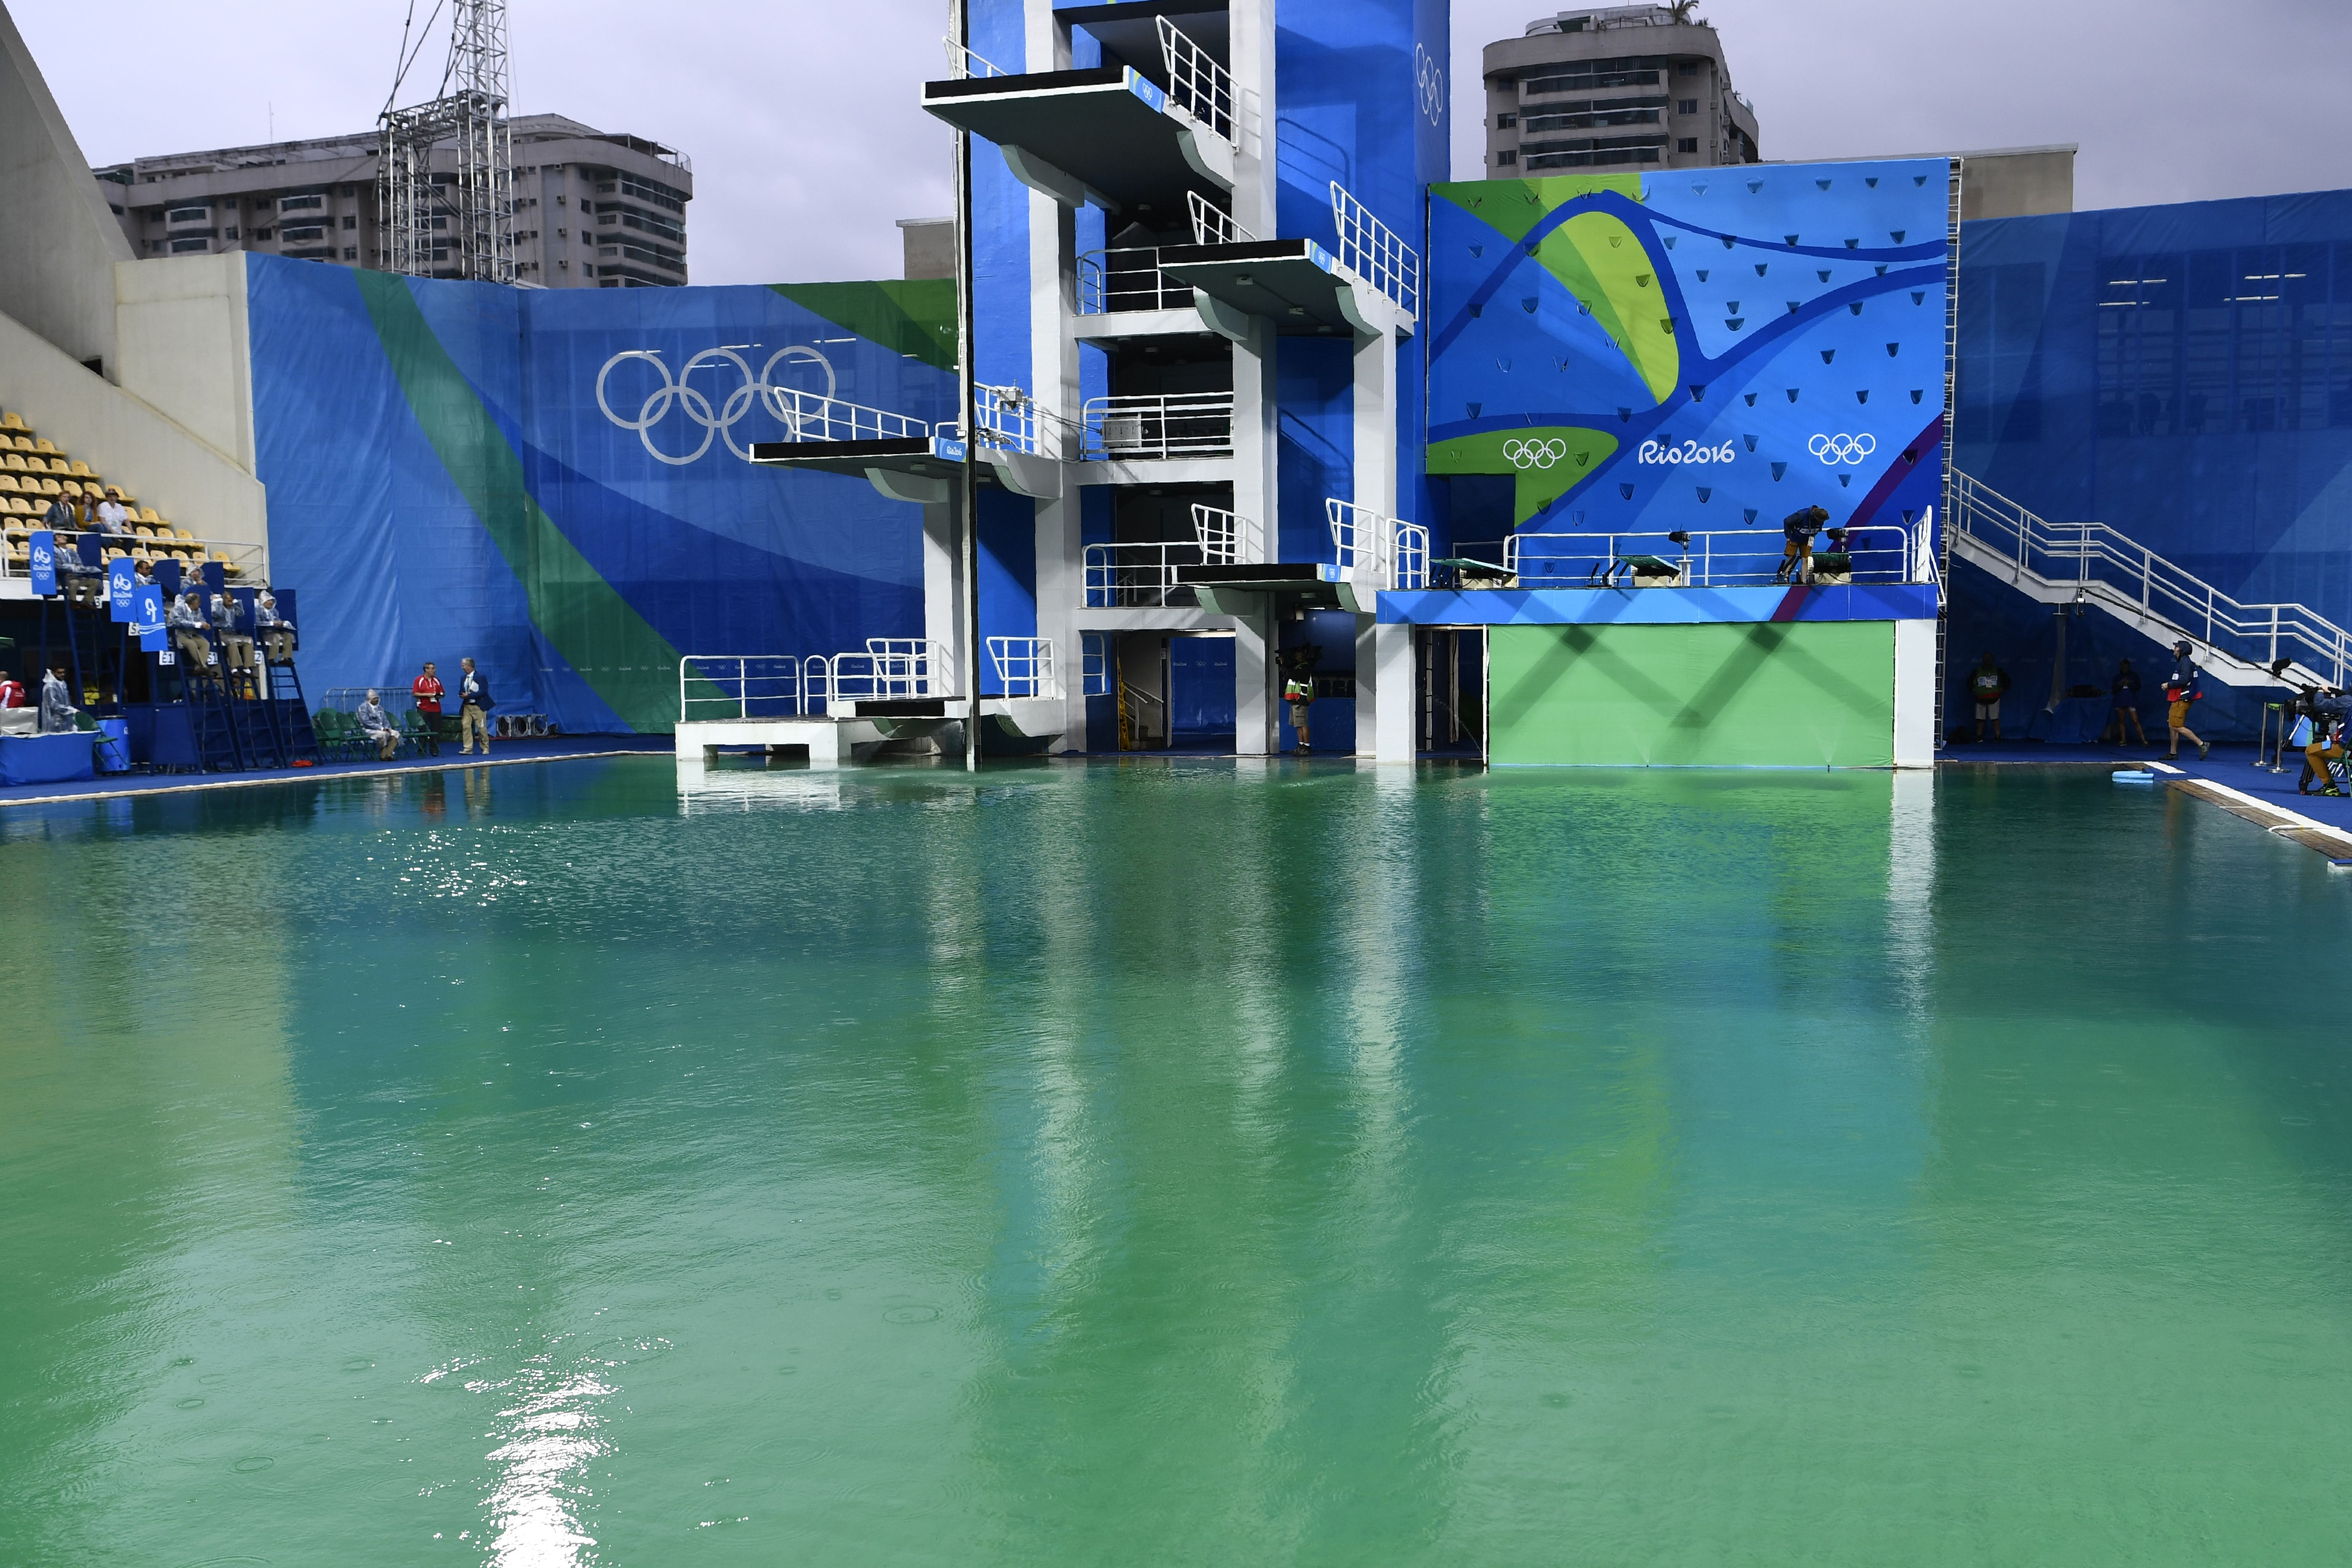 Whoa: The VERY green Olympic diving pool has officially been shut down